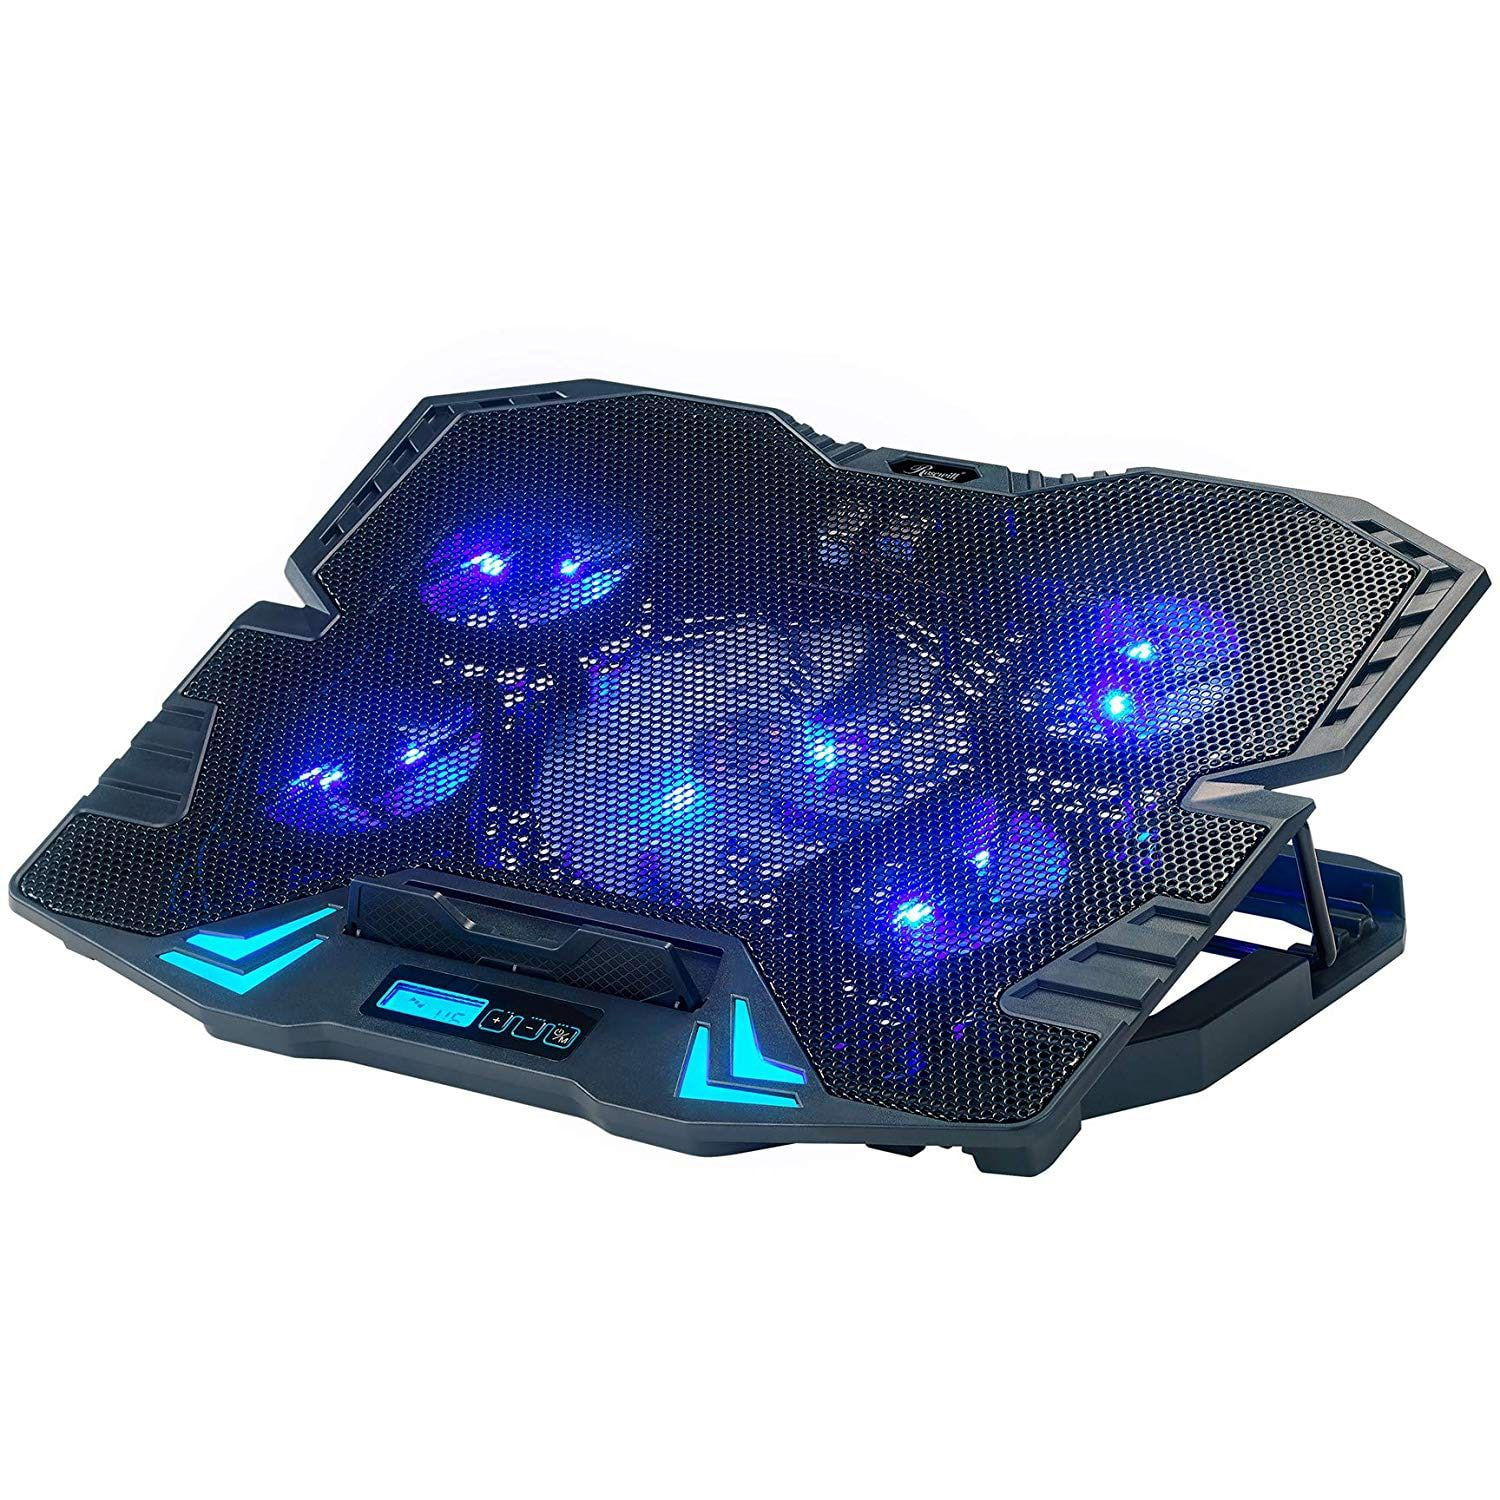 The Best Laptop Cooling Pads Laptop Cooler Laptop Cooling Pad